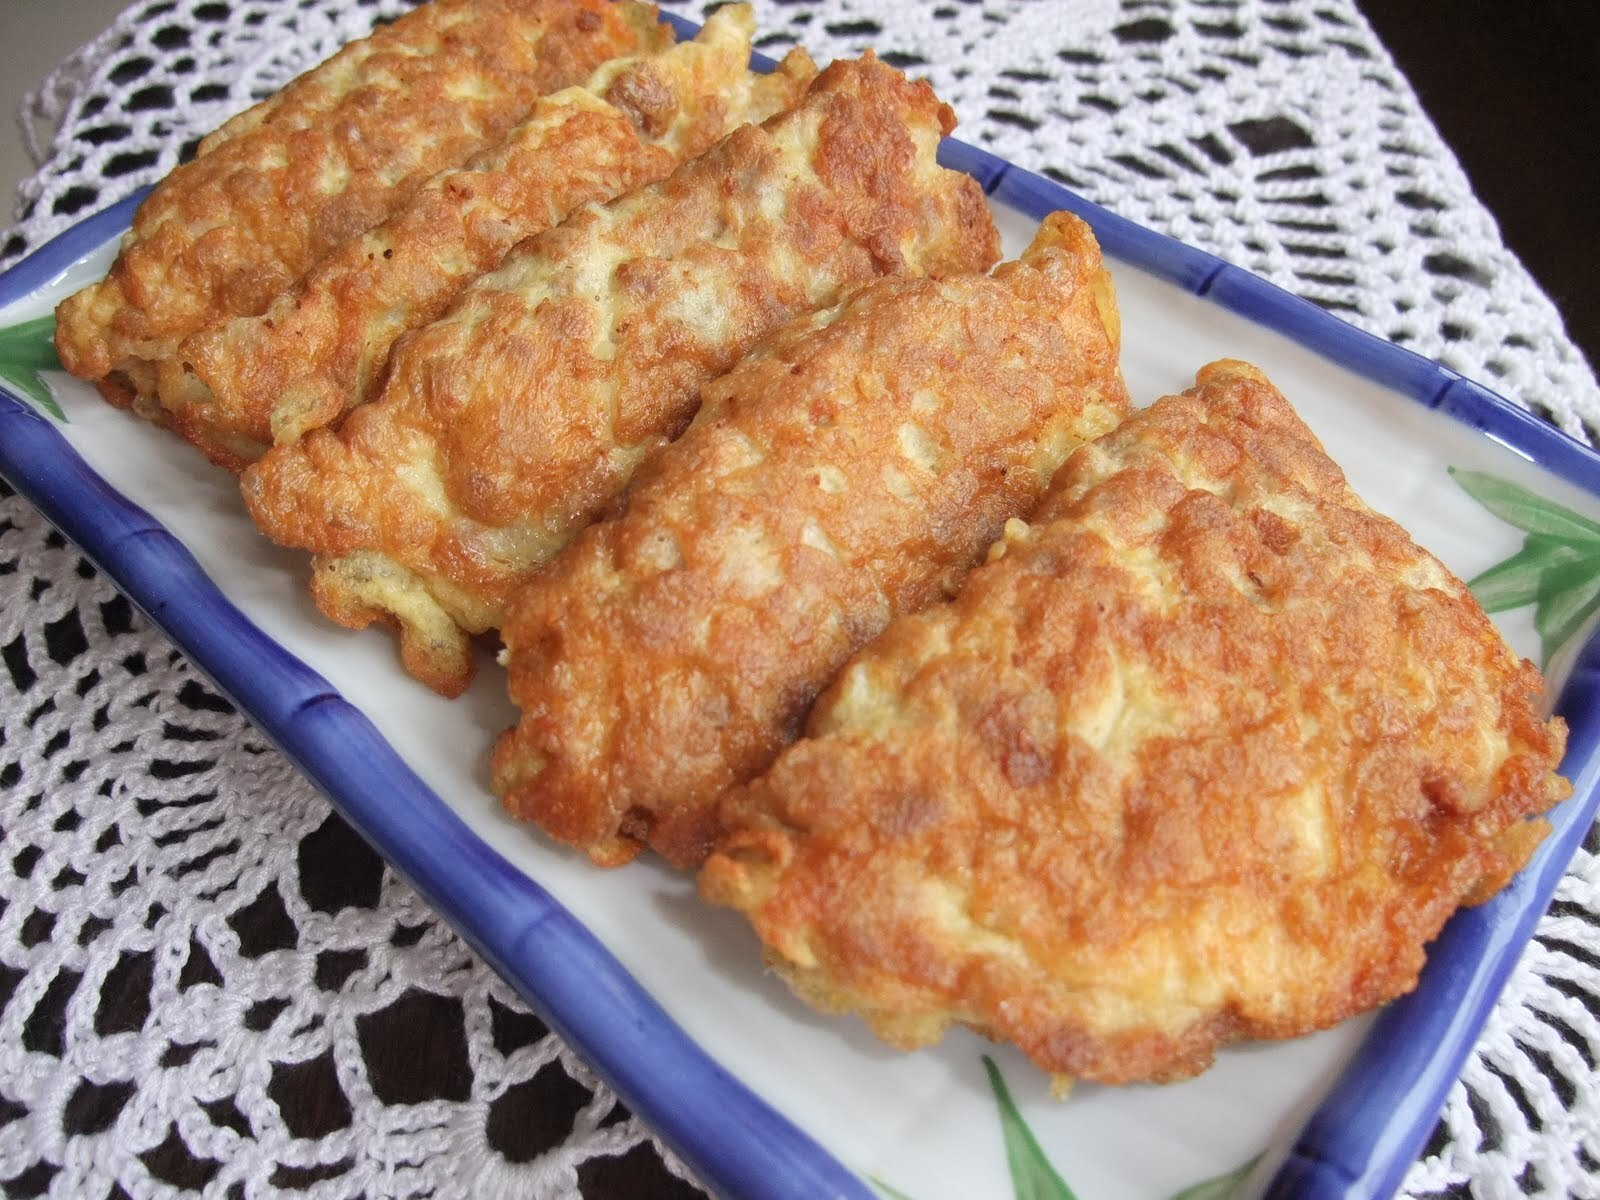 Pan Fried Minced Pork  Omelette